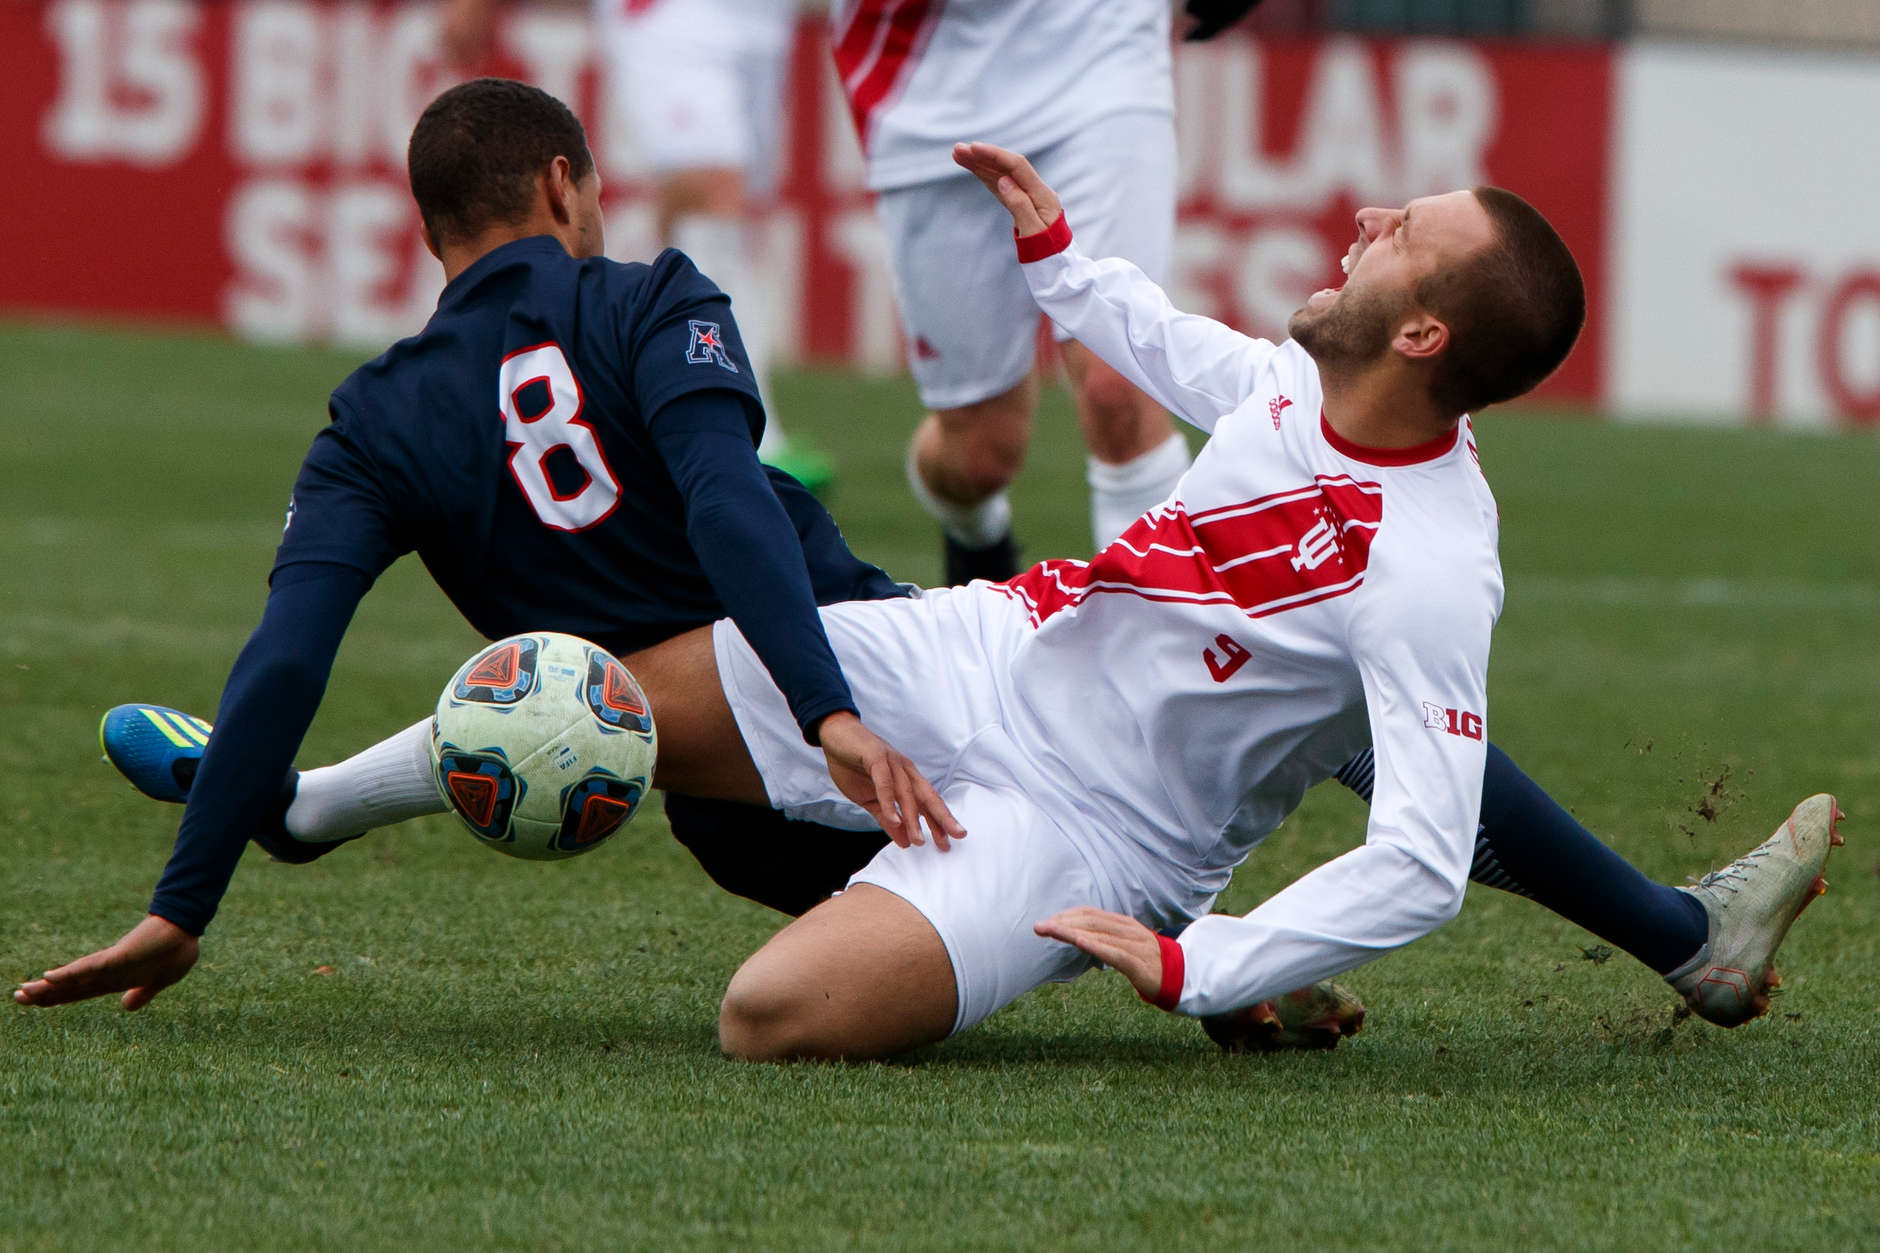 Connecticut's Felix Metzler (8) fouls Indiana's Thomas Warr (9) during the second half of an NCAA men's soccer tournament match at Bill Armstrong Stadium in Bloomington, Ind. on Sunday, Nov. 18, 2018. IU won 4-0. (James Brosher for The Herald-Times)